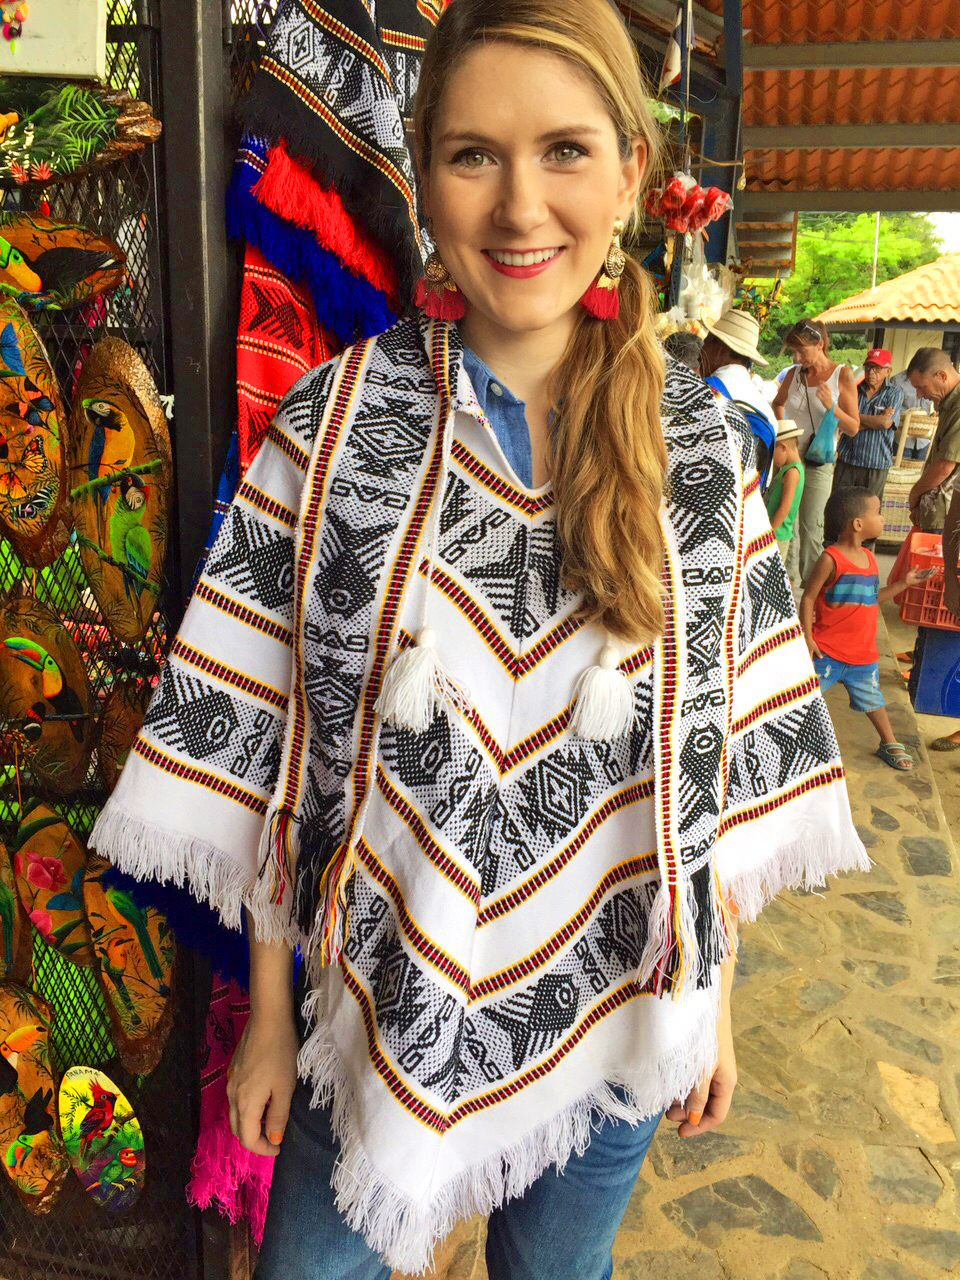 Loving this poncho from the markets of El Valle, Panama